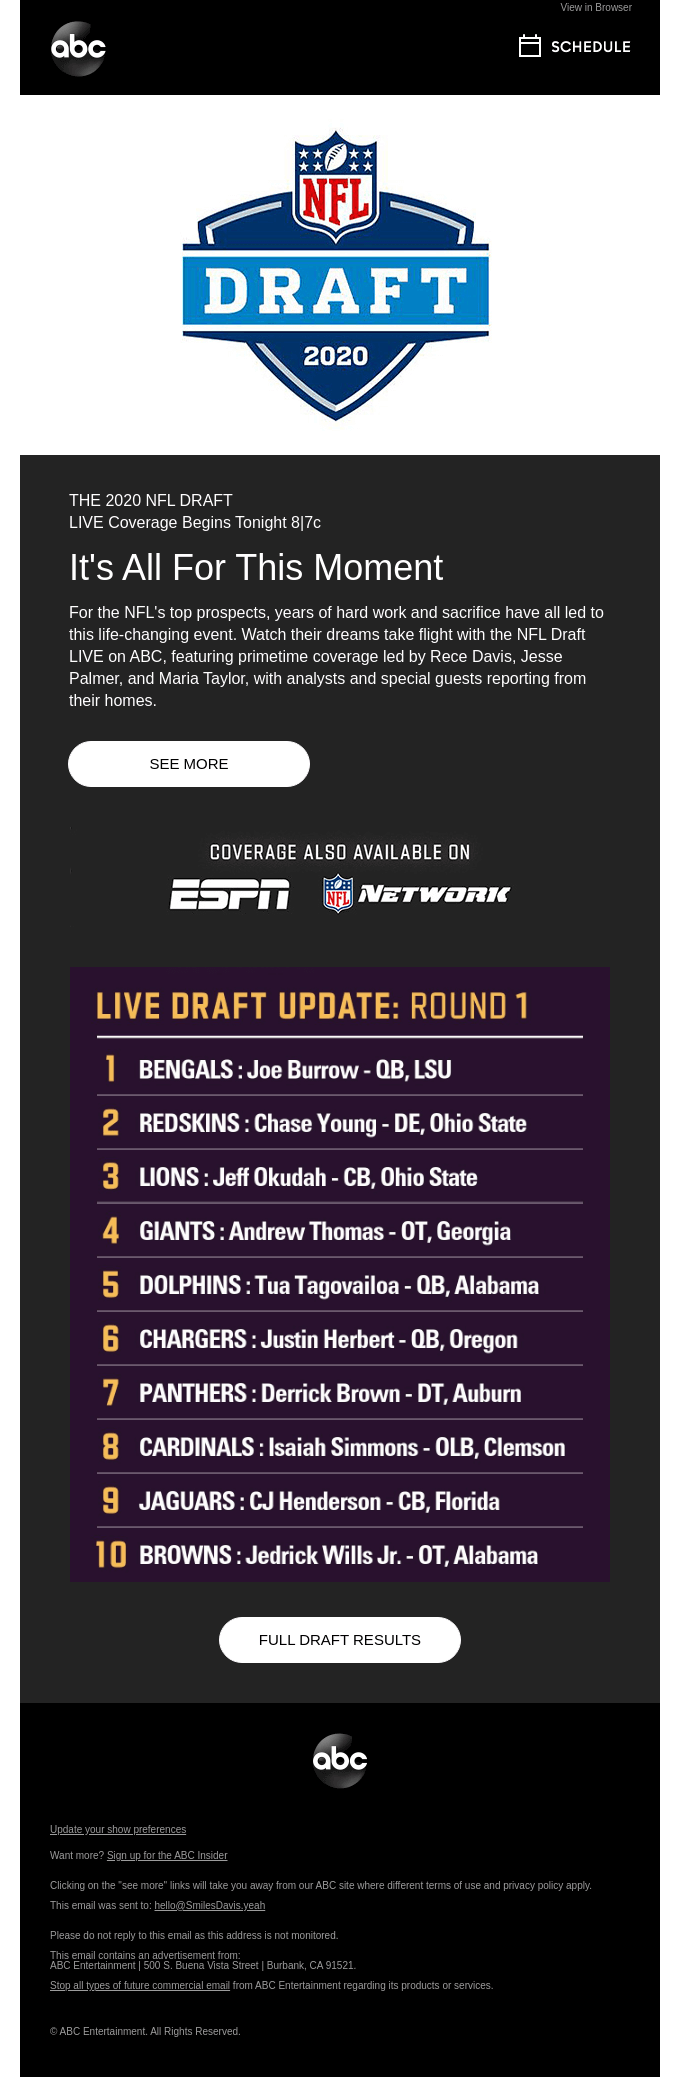 LIVE Coverage of the NFL Draft Begins Tonight at 8|7c